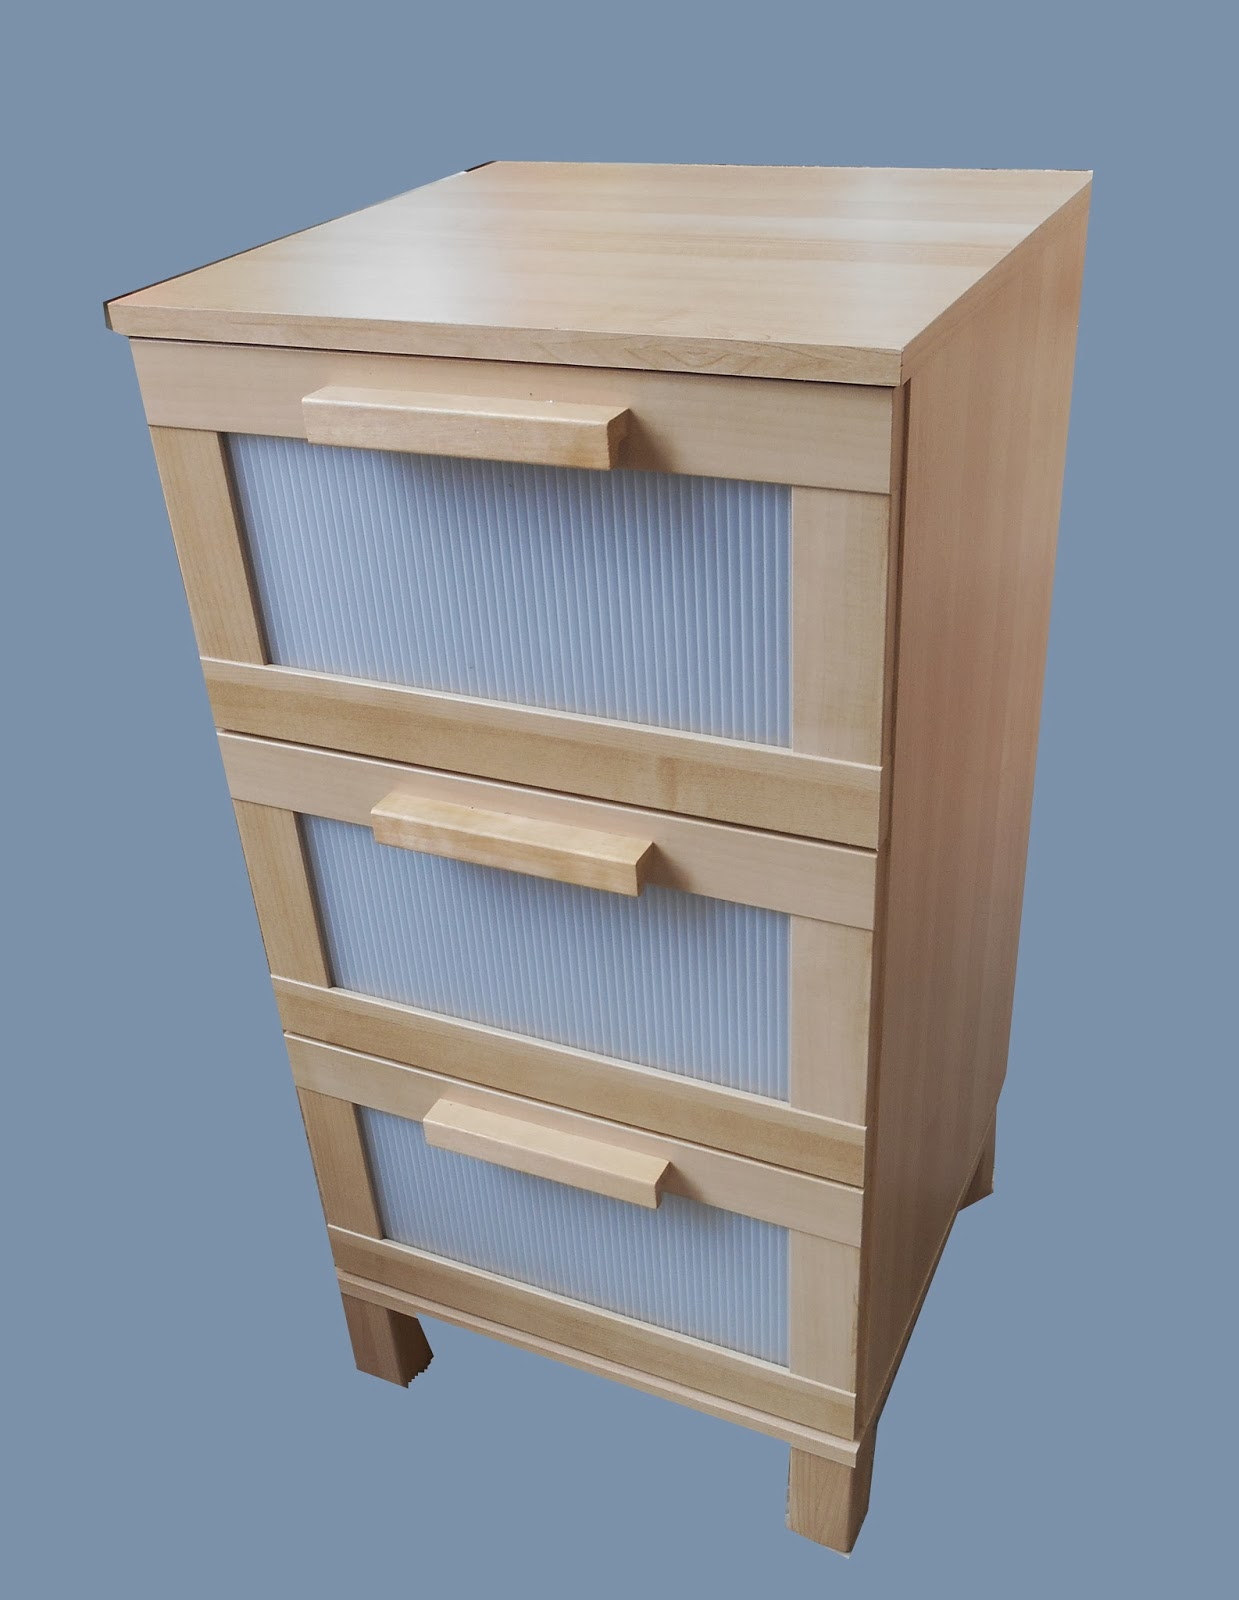 #624B3B Uhuru Furniture & Collectibles: IKEA Small 3 Drawer Chest  SOLD with 1239x1600 px of Most Effective Small Three Drawer Chest 16001239 wallpaper @ avoidforclosure.info